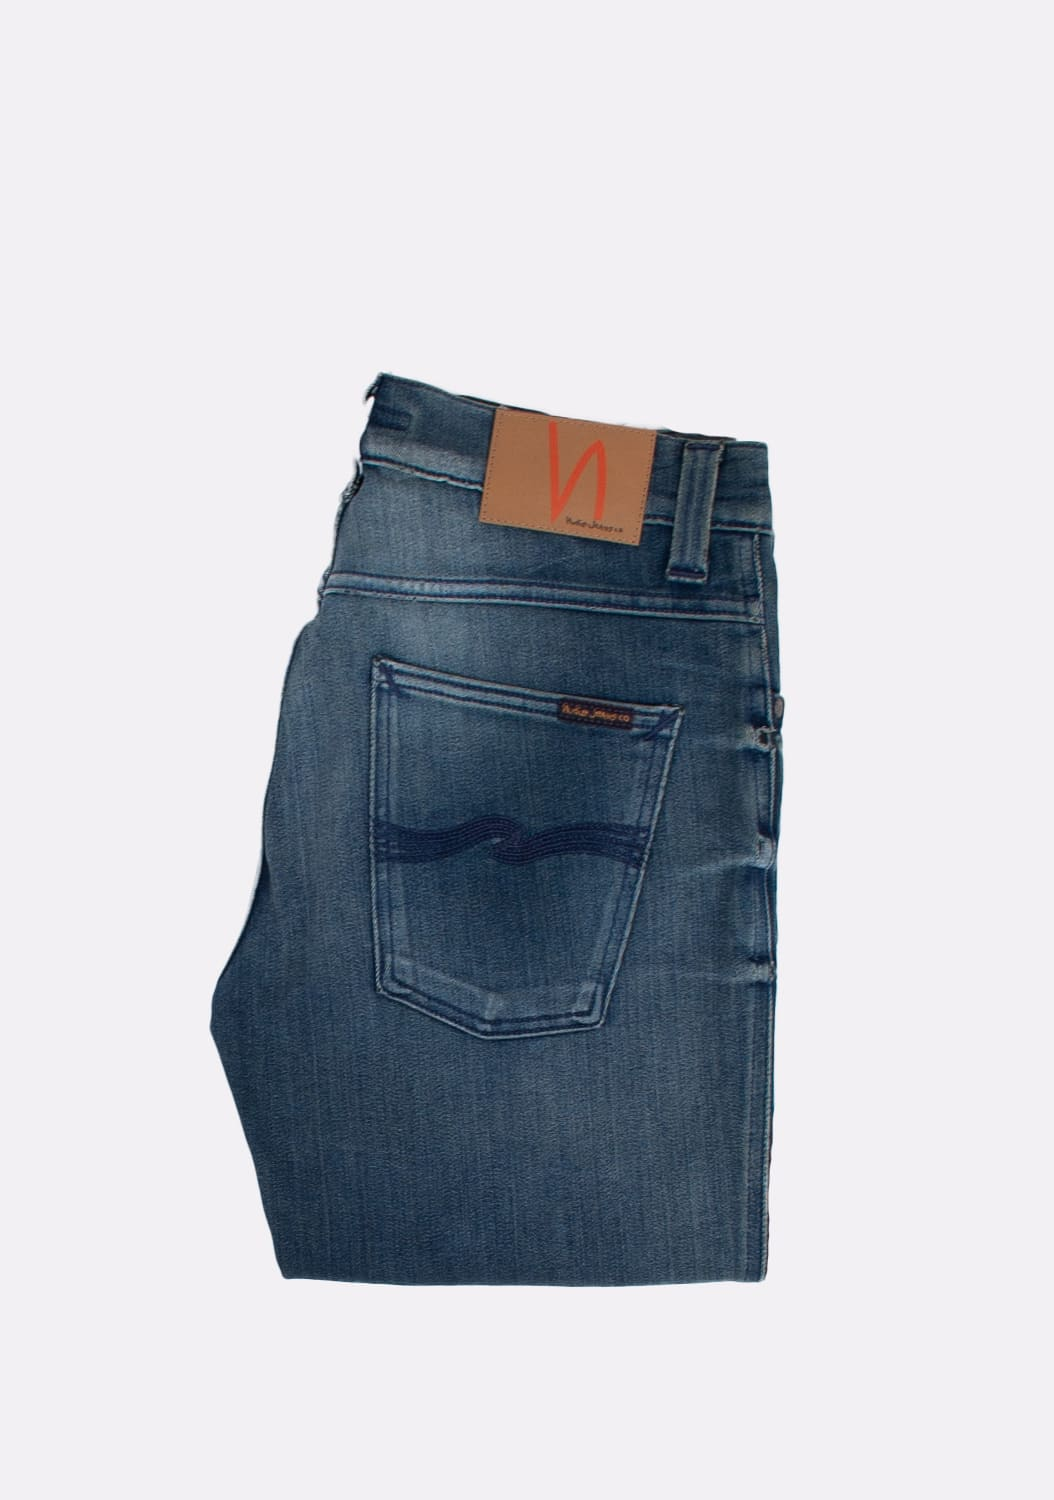 Nudie-Jeans-Slim-Jim-Scraped-melynai-pilki-Straight-dzinsai-dydis-32-34 (1)